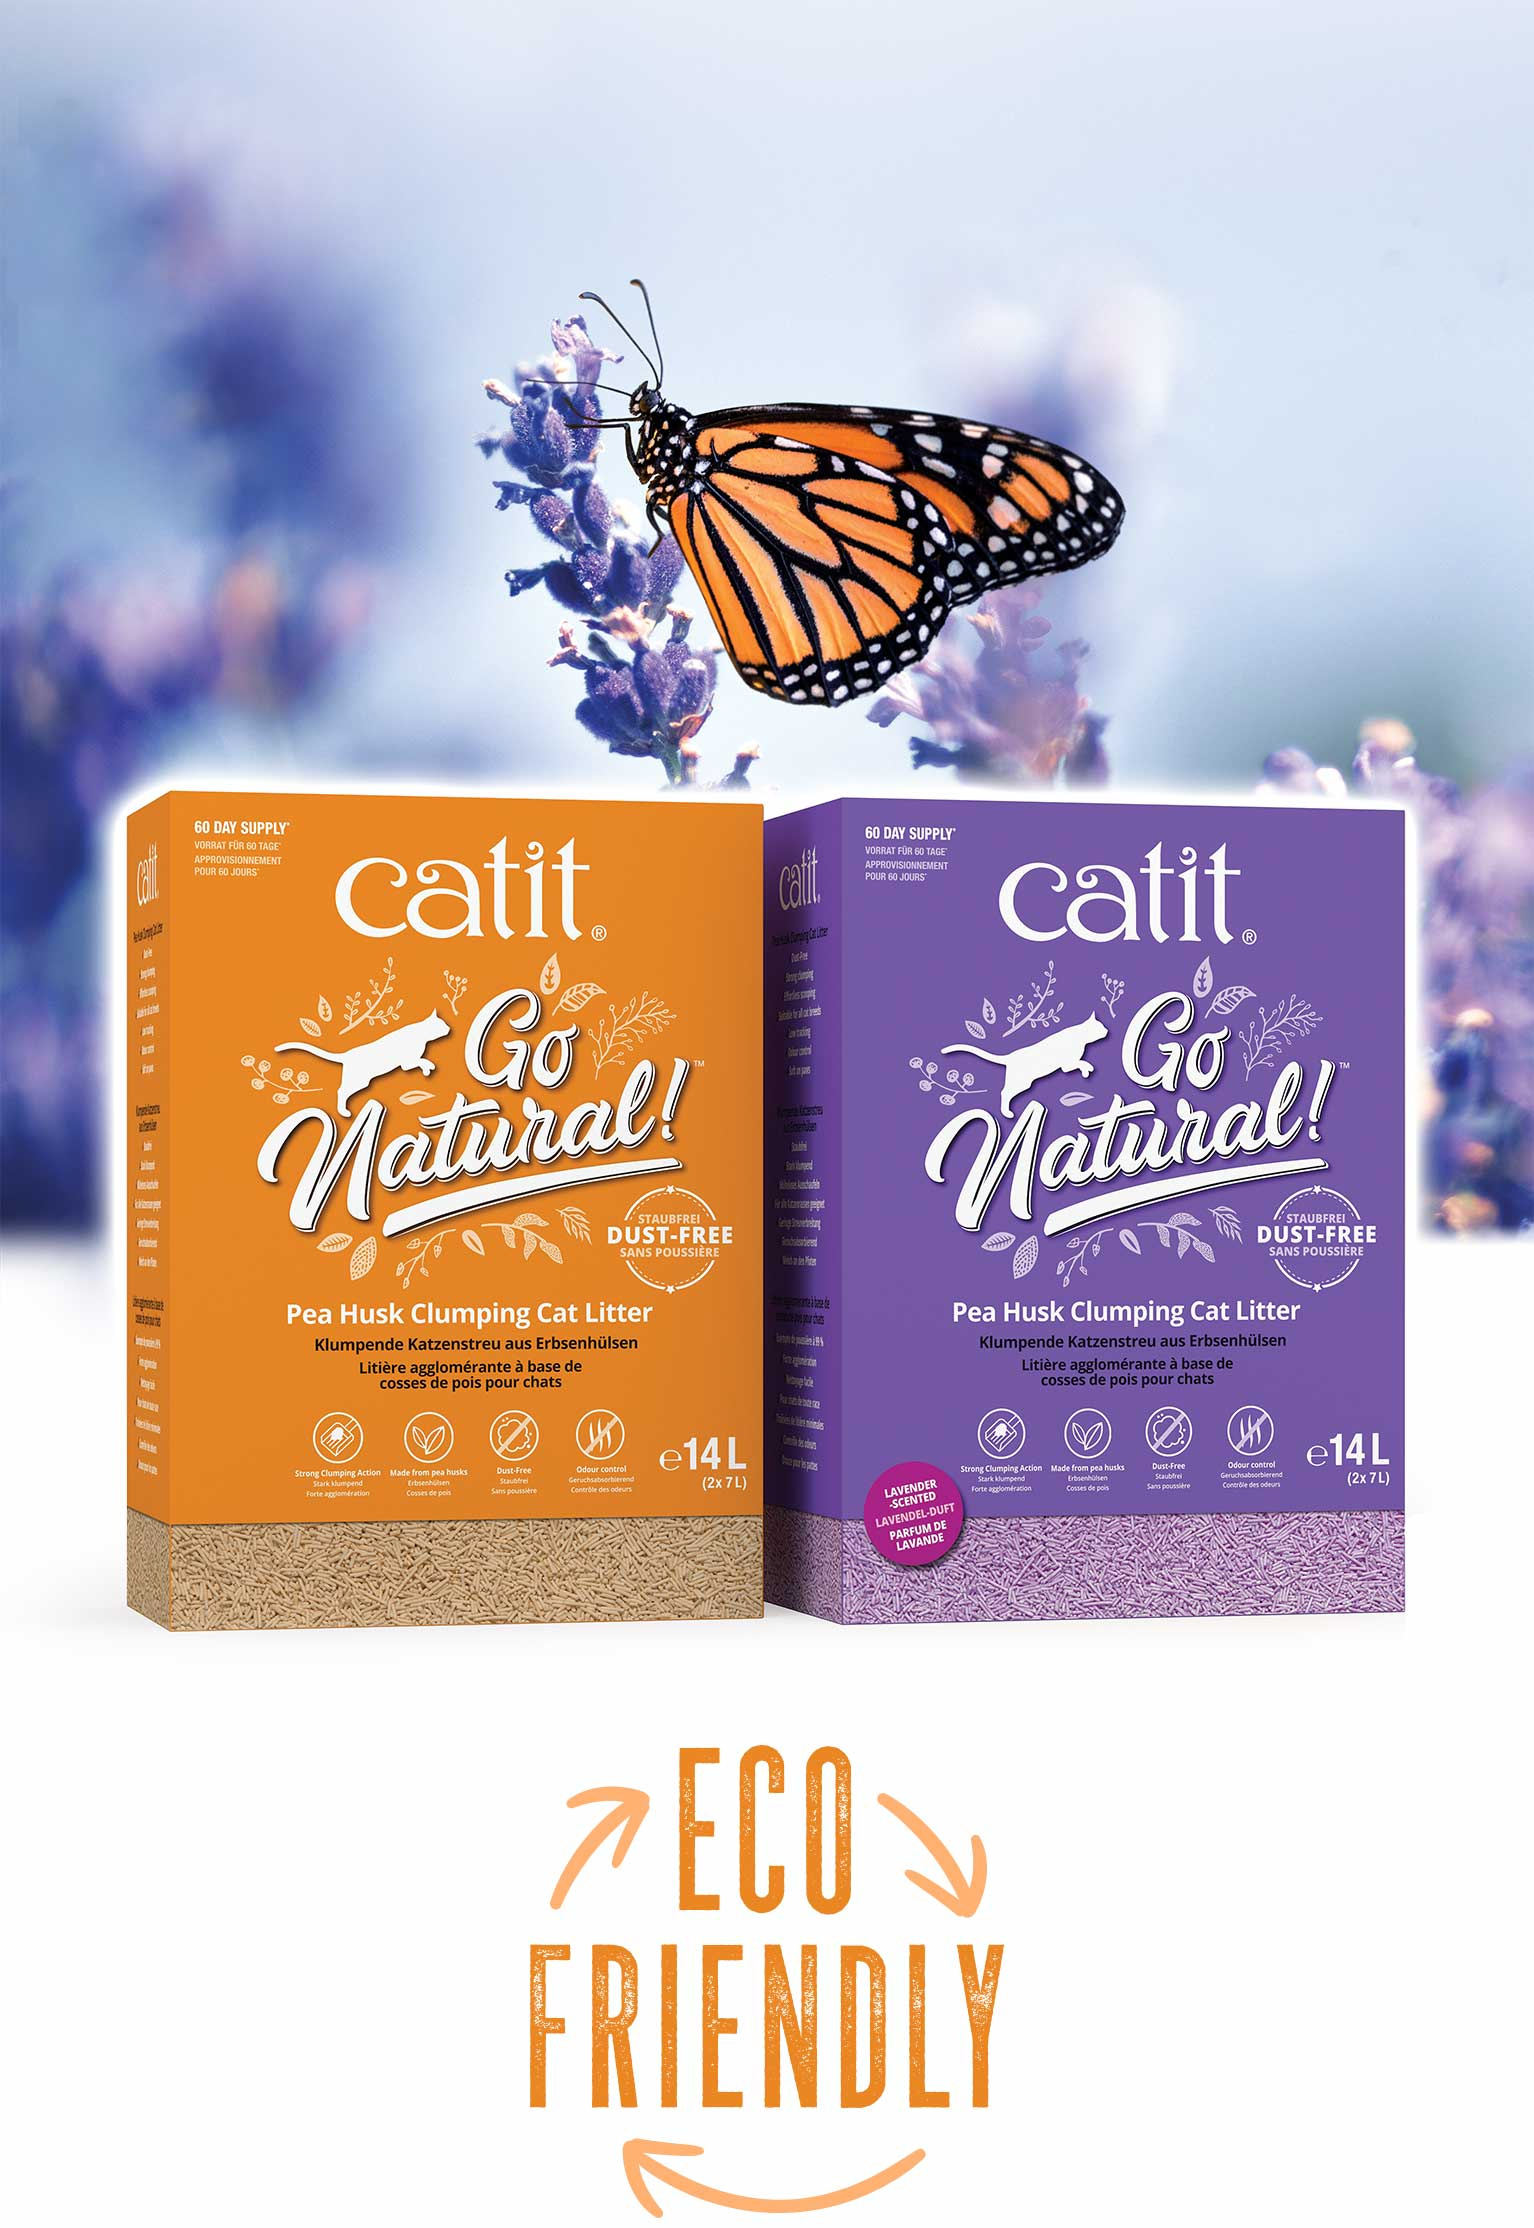 Catit Go Natural clumping cat litter - Eco Friendly